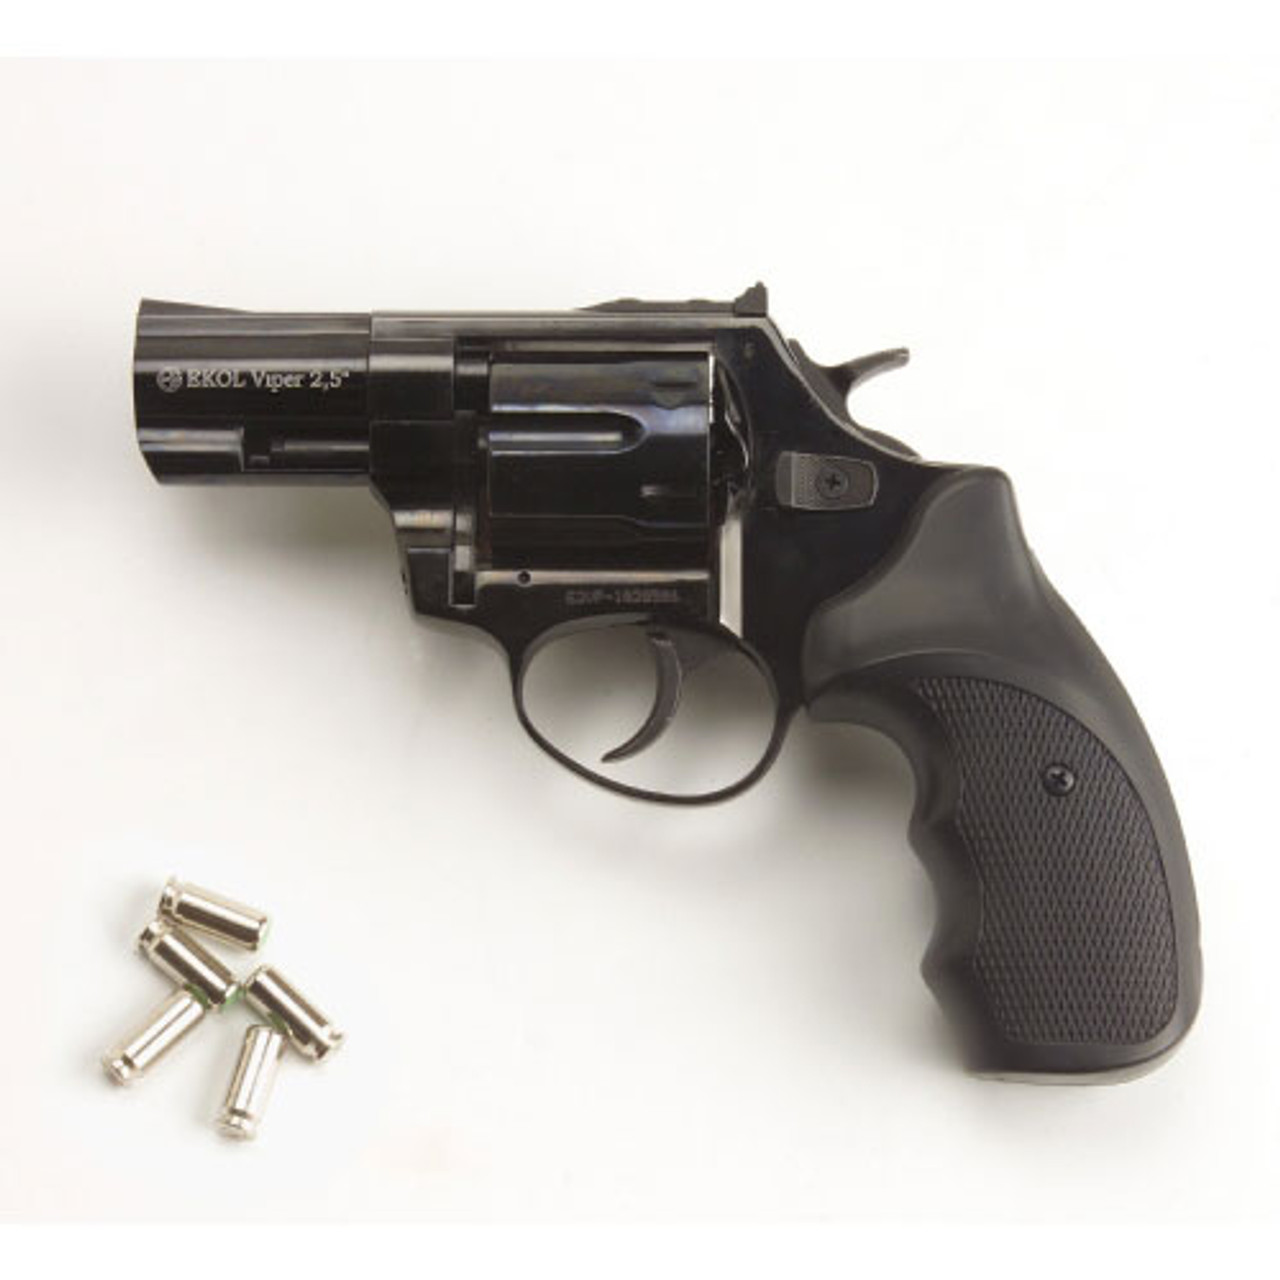 Viper 2 5 Barrel 9mm Blank Firing Revolver Black Finish (CLONE of Taurus  605  357 magnum)